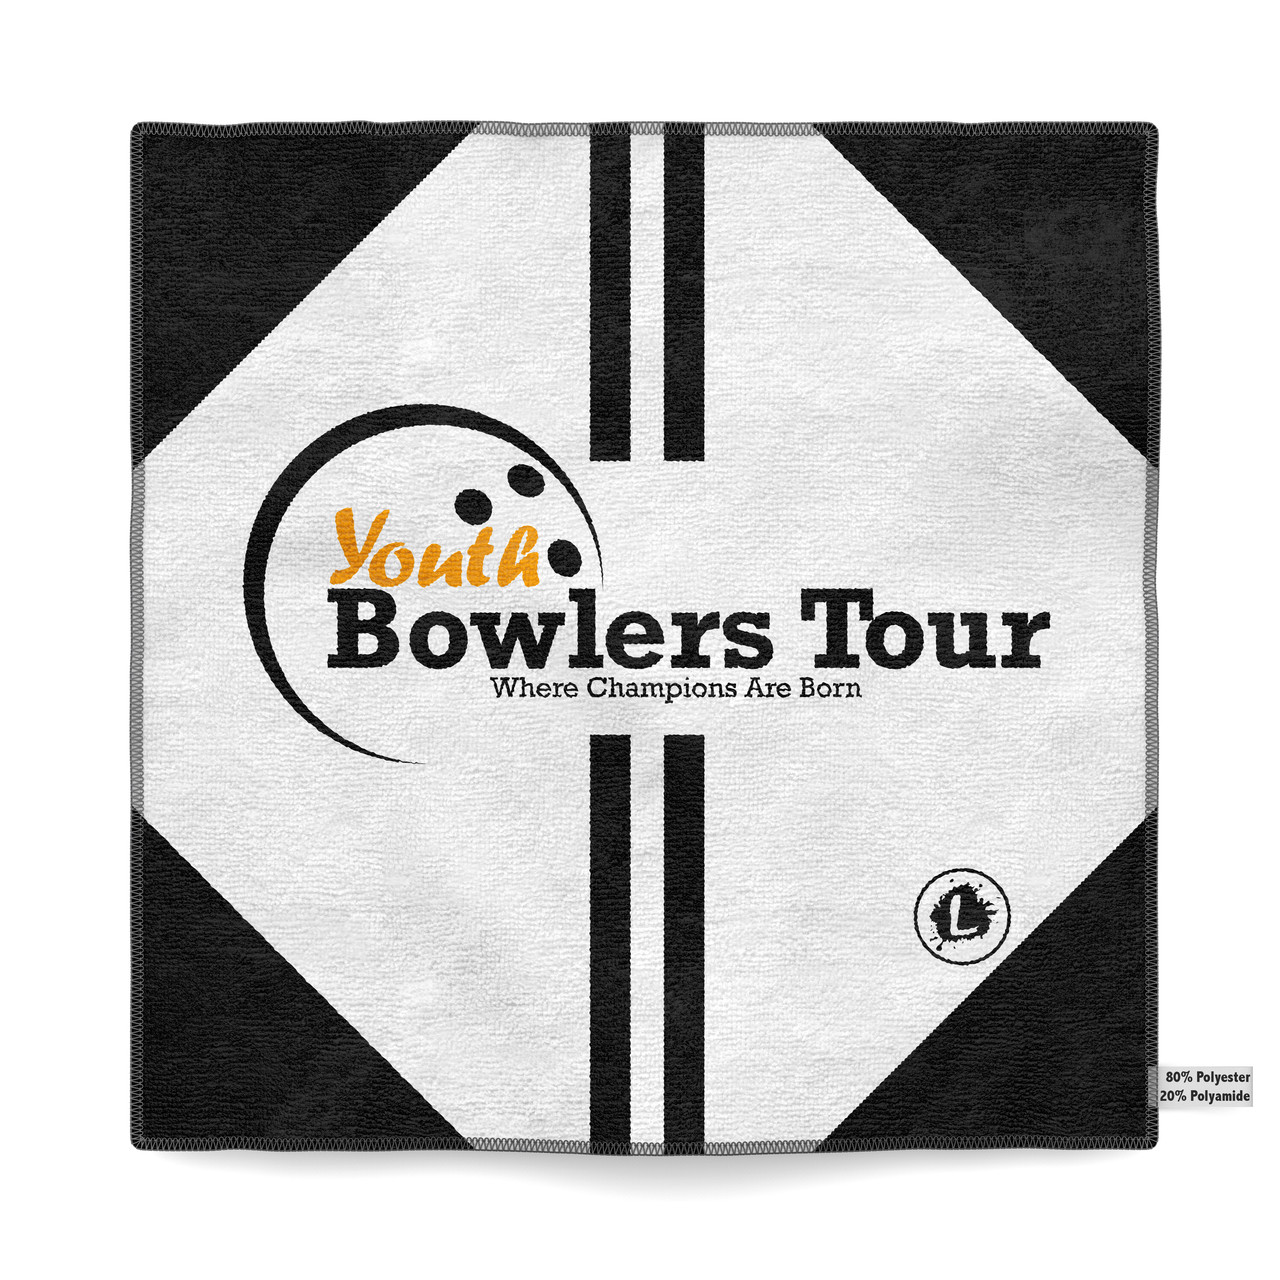 Youth Bowlers Tour - YBT - DS Towel - YBT002